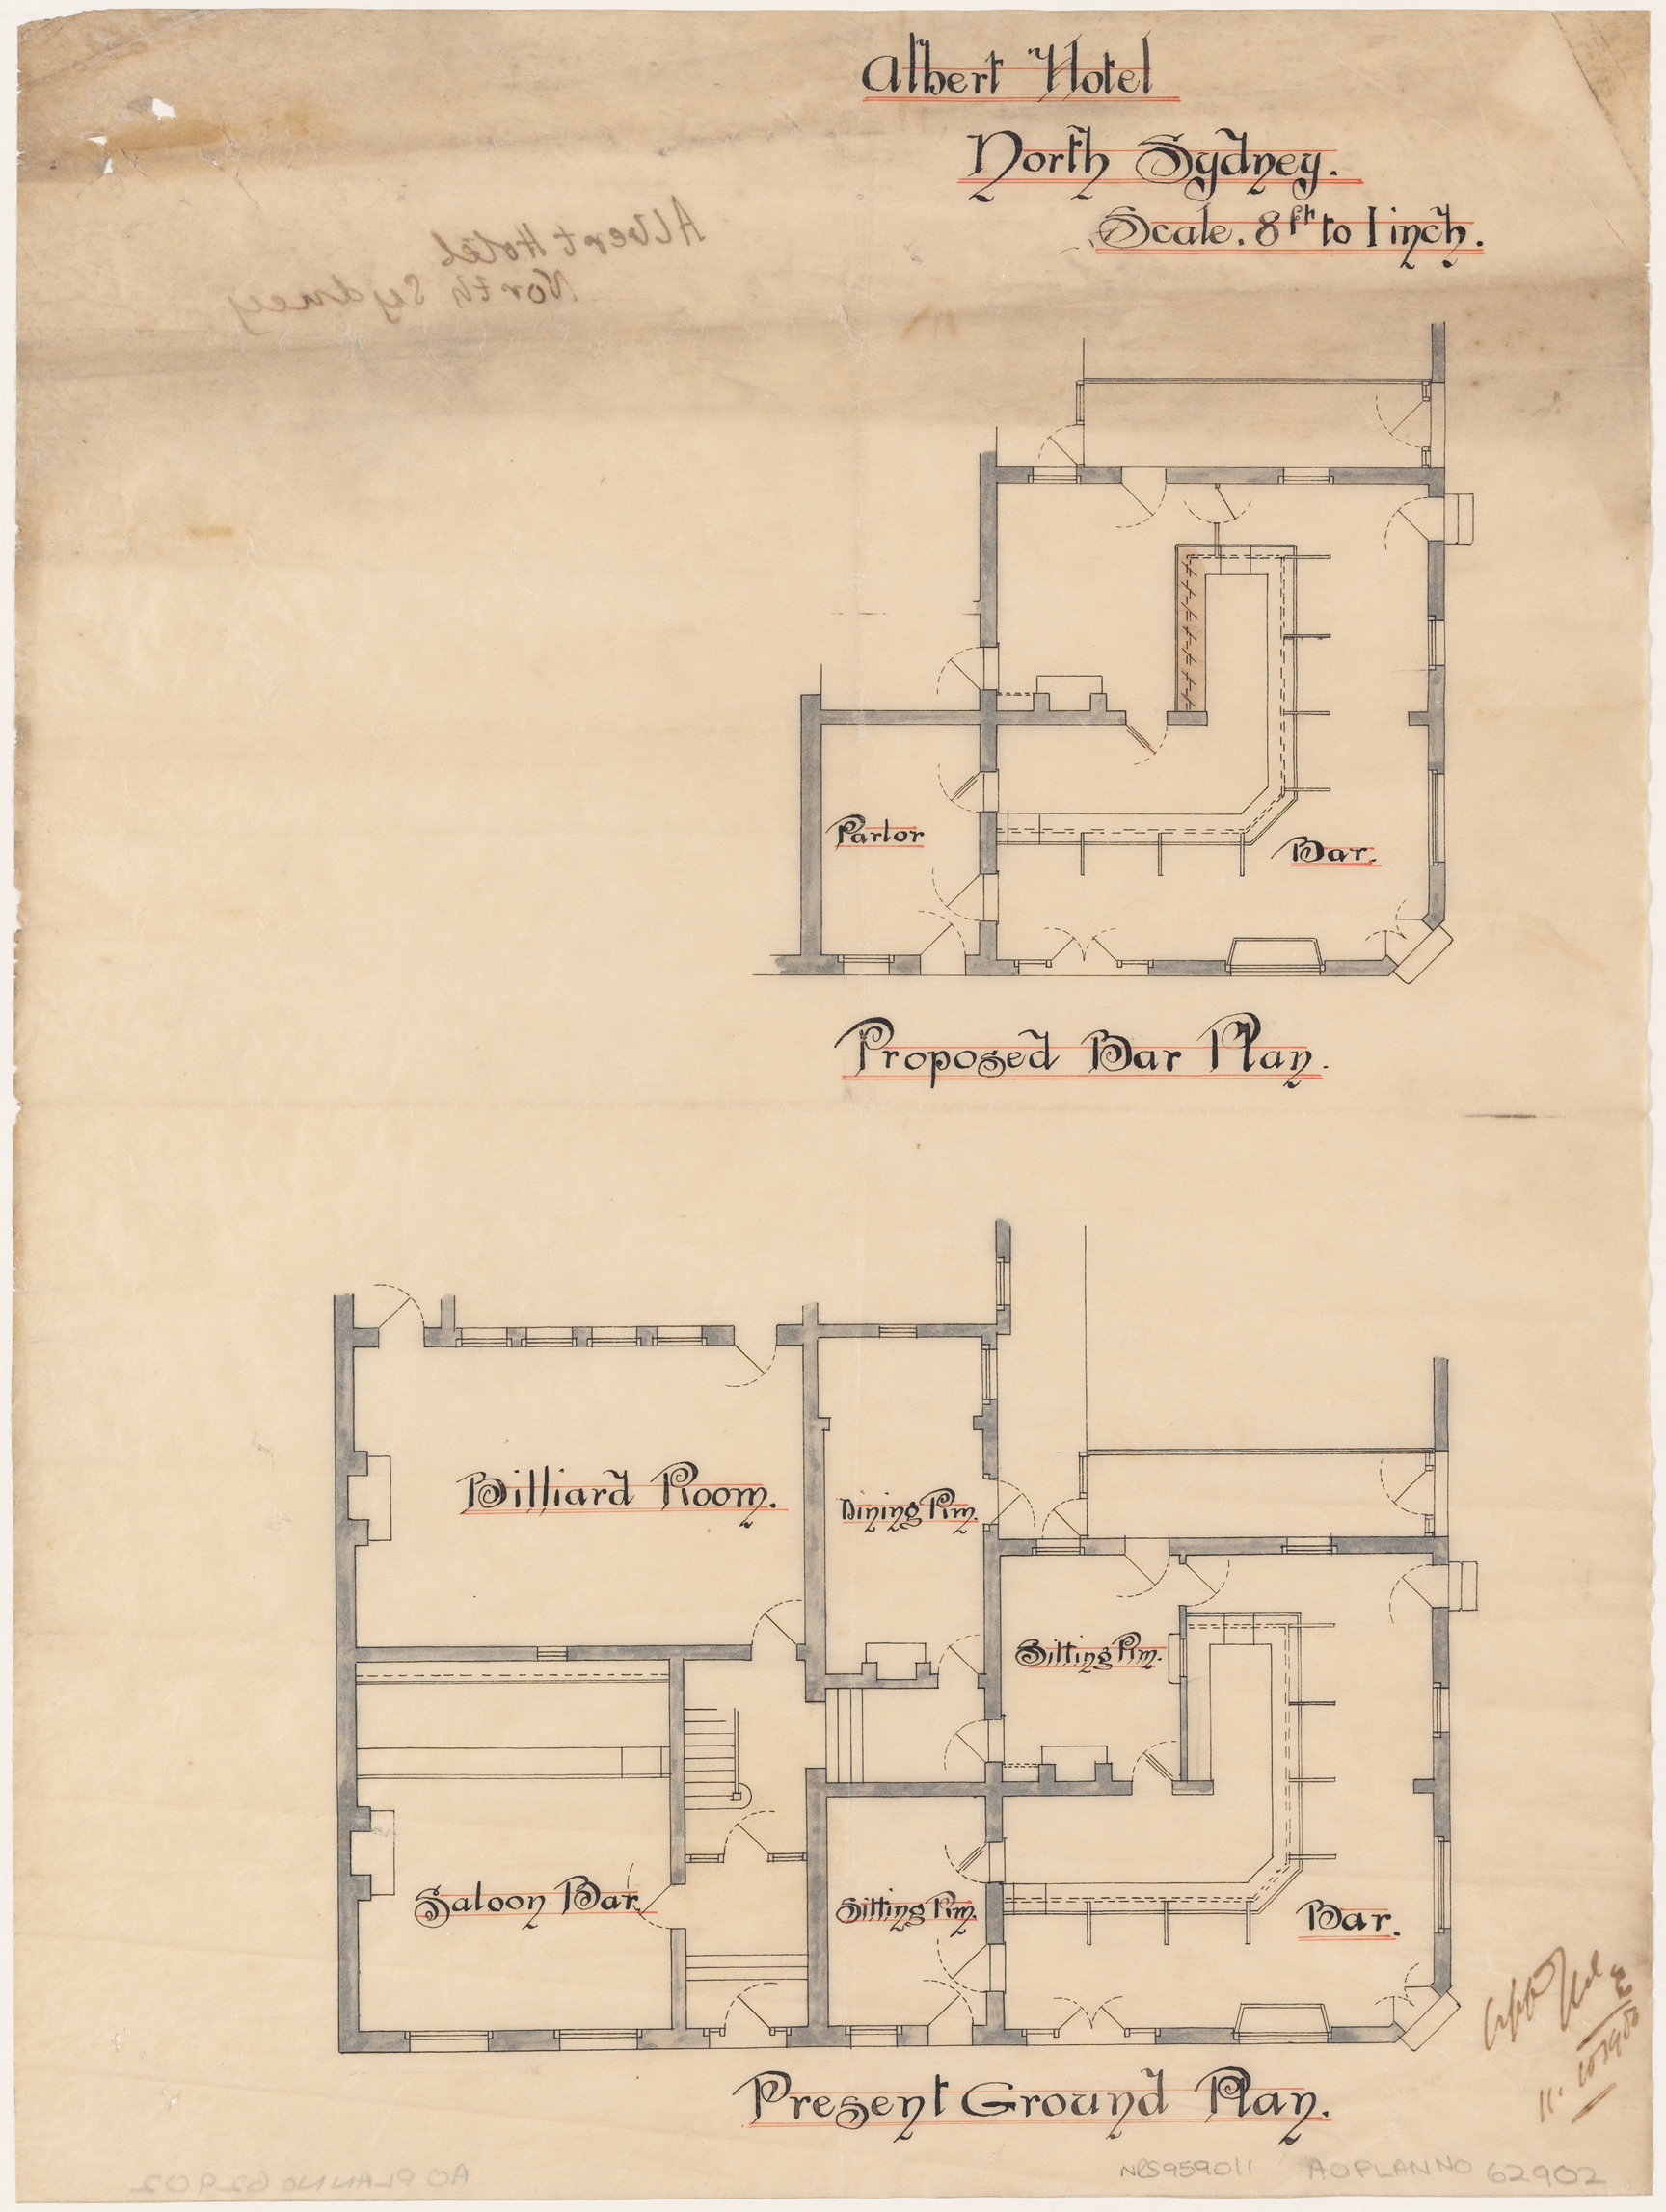 Albert Hotel, Proposed ground floor plan, proposed bar plan.  Signed 11 October 1906